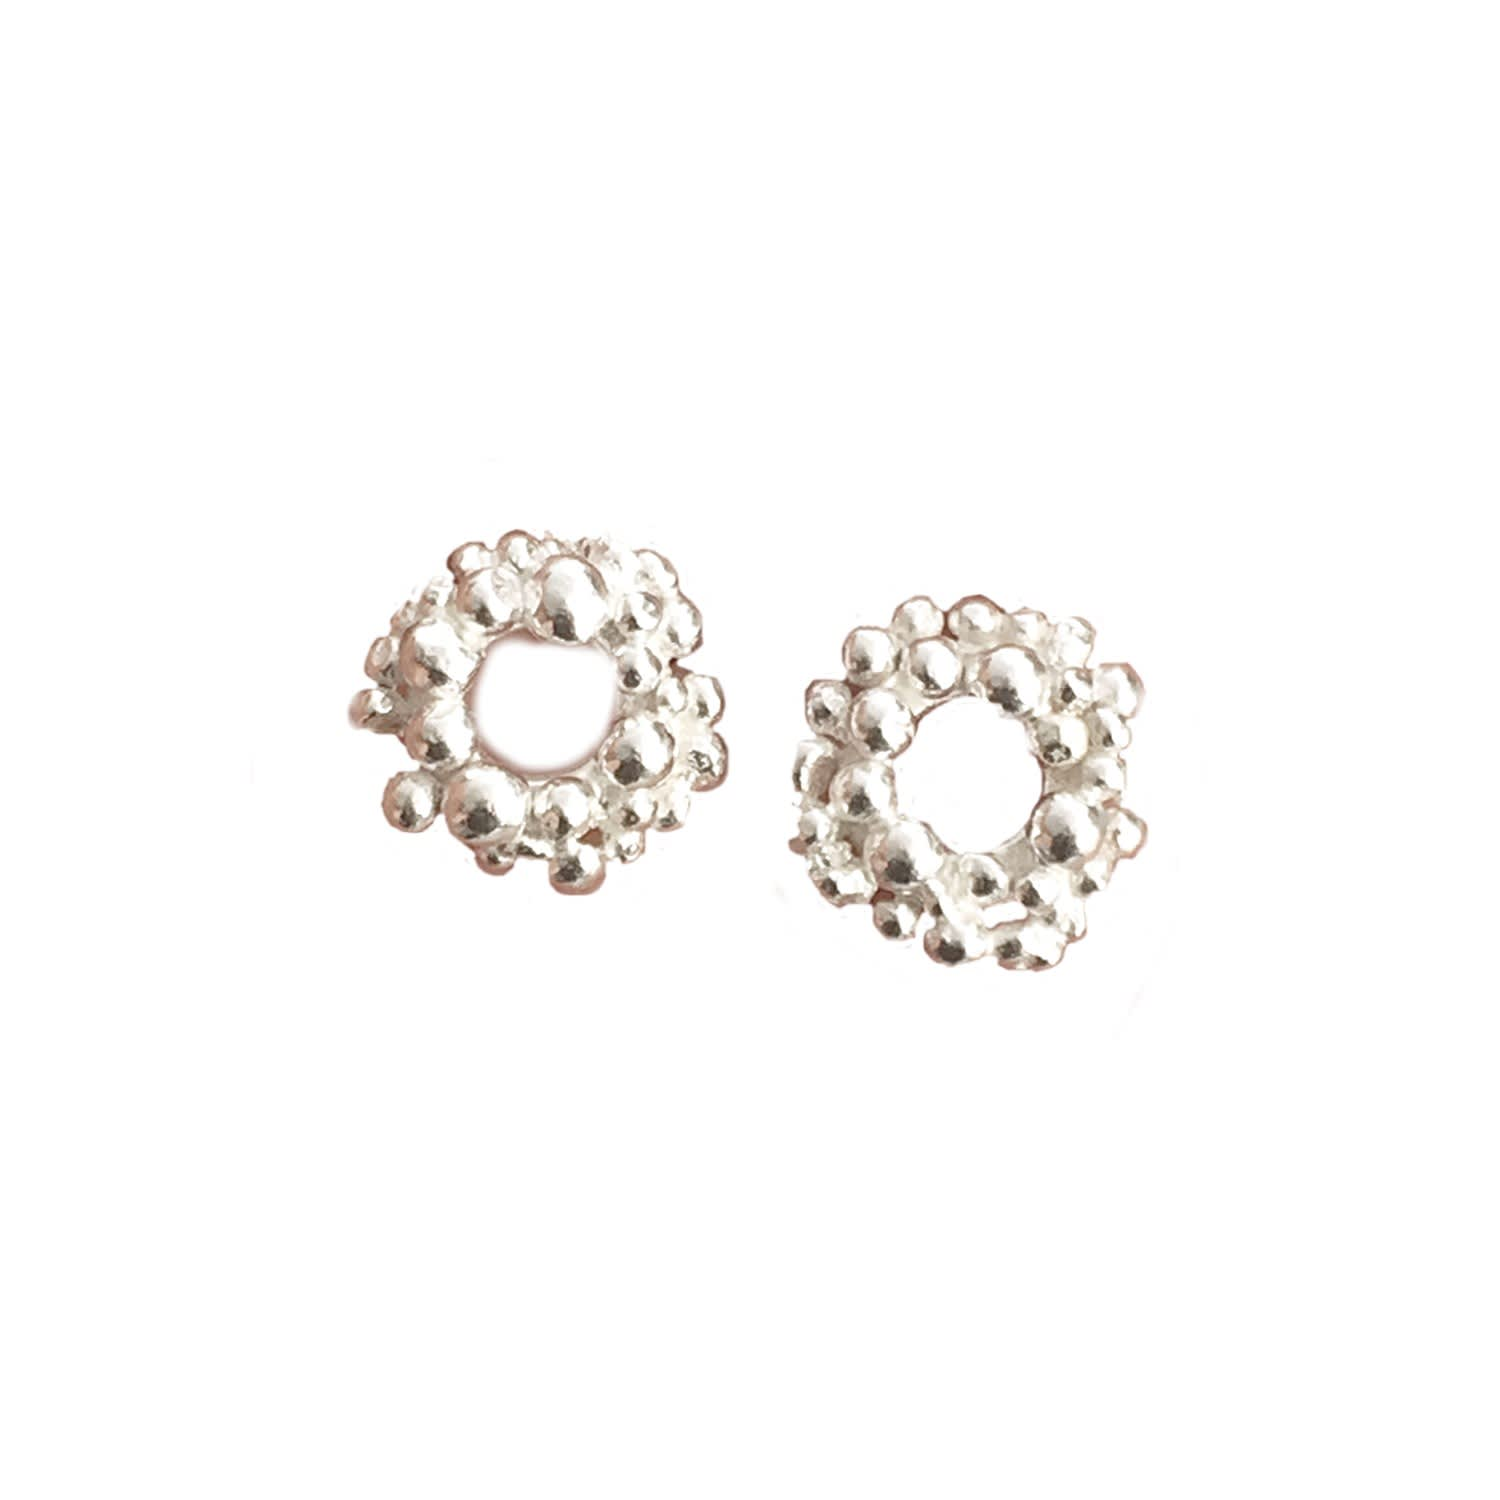 7d4028786 Rock Chic Circle Stud Earrings | Lily Flo Jewellery | Wolf & Badger